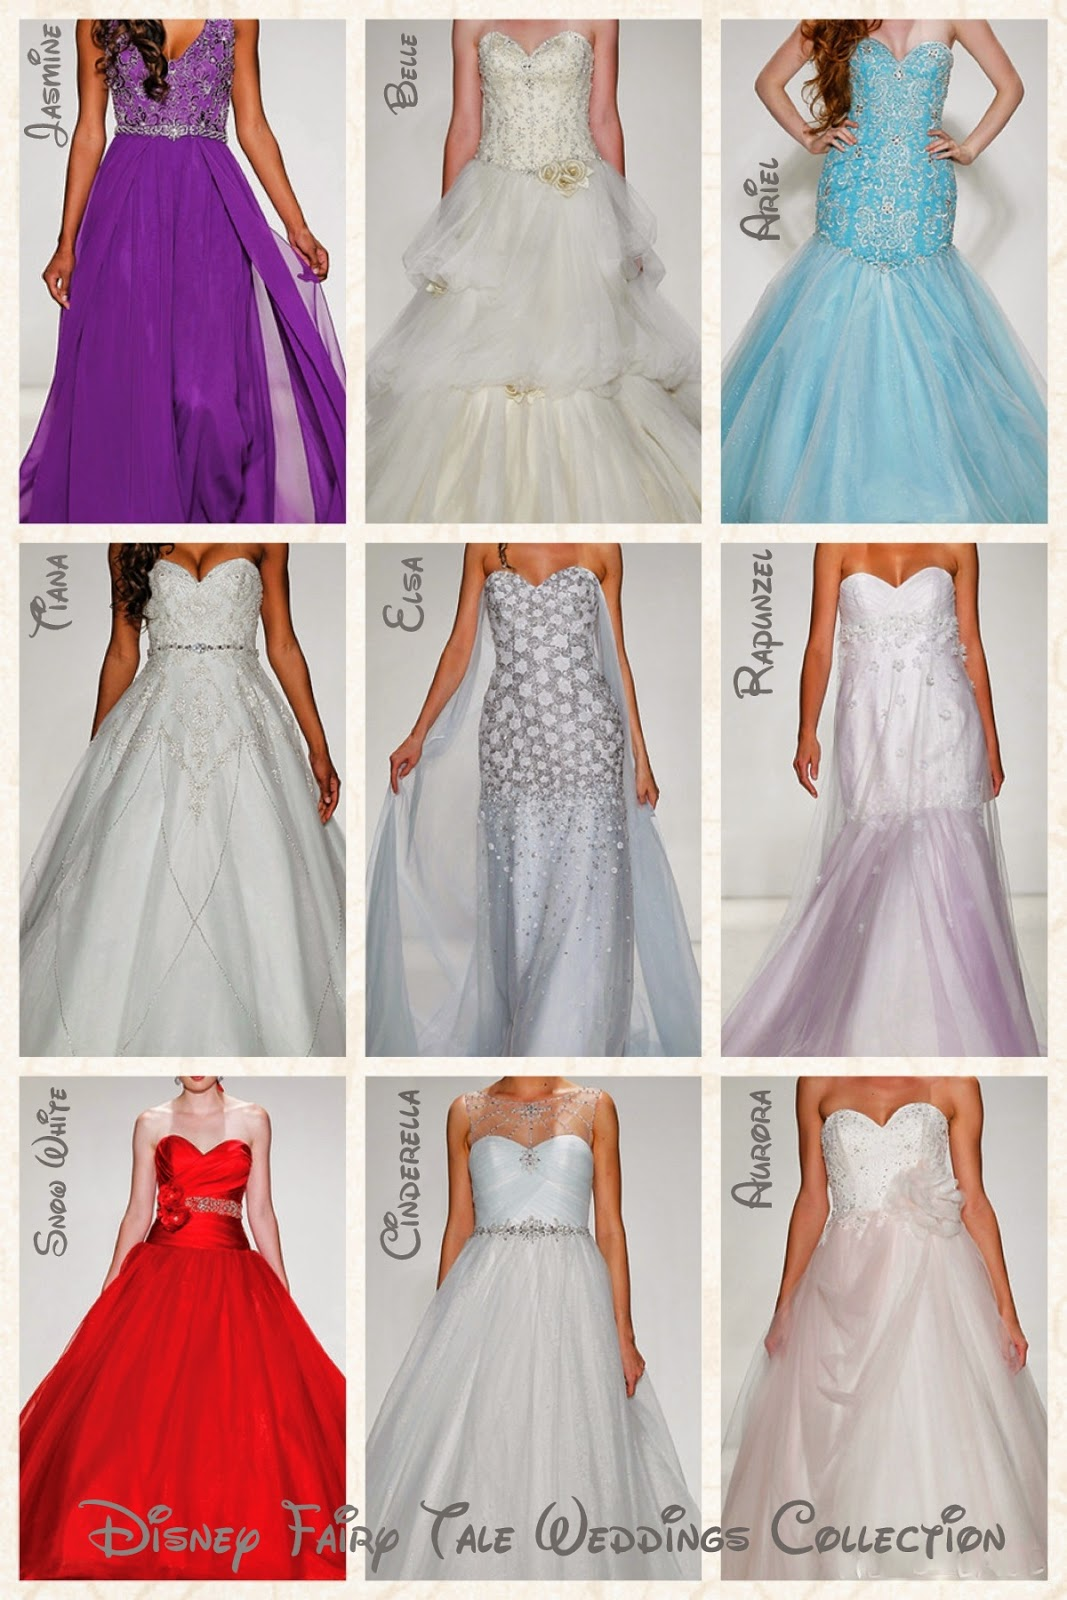 Disney Princess Inspired Wedding Dress Collection